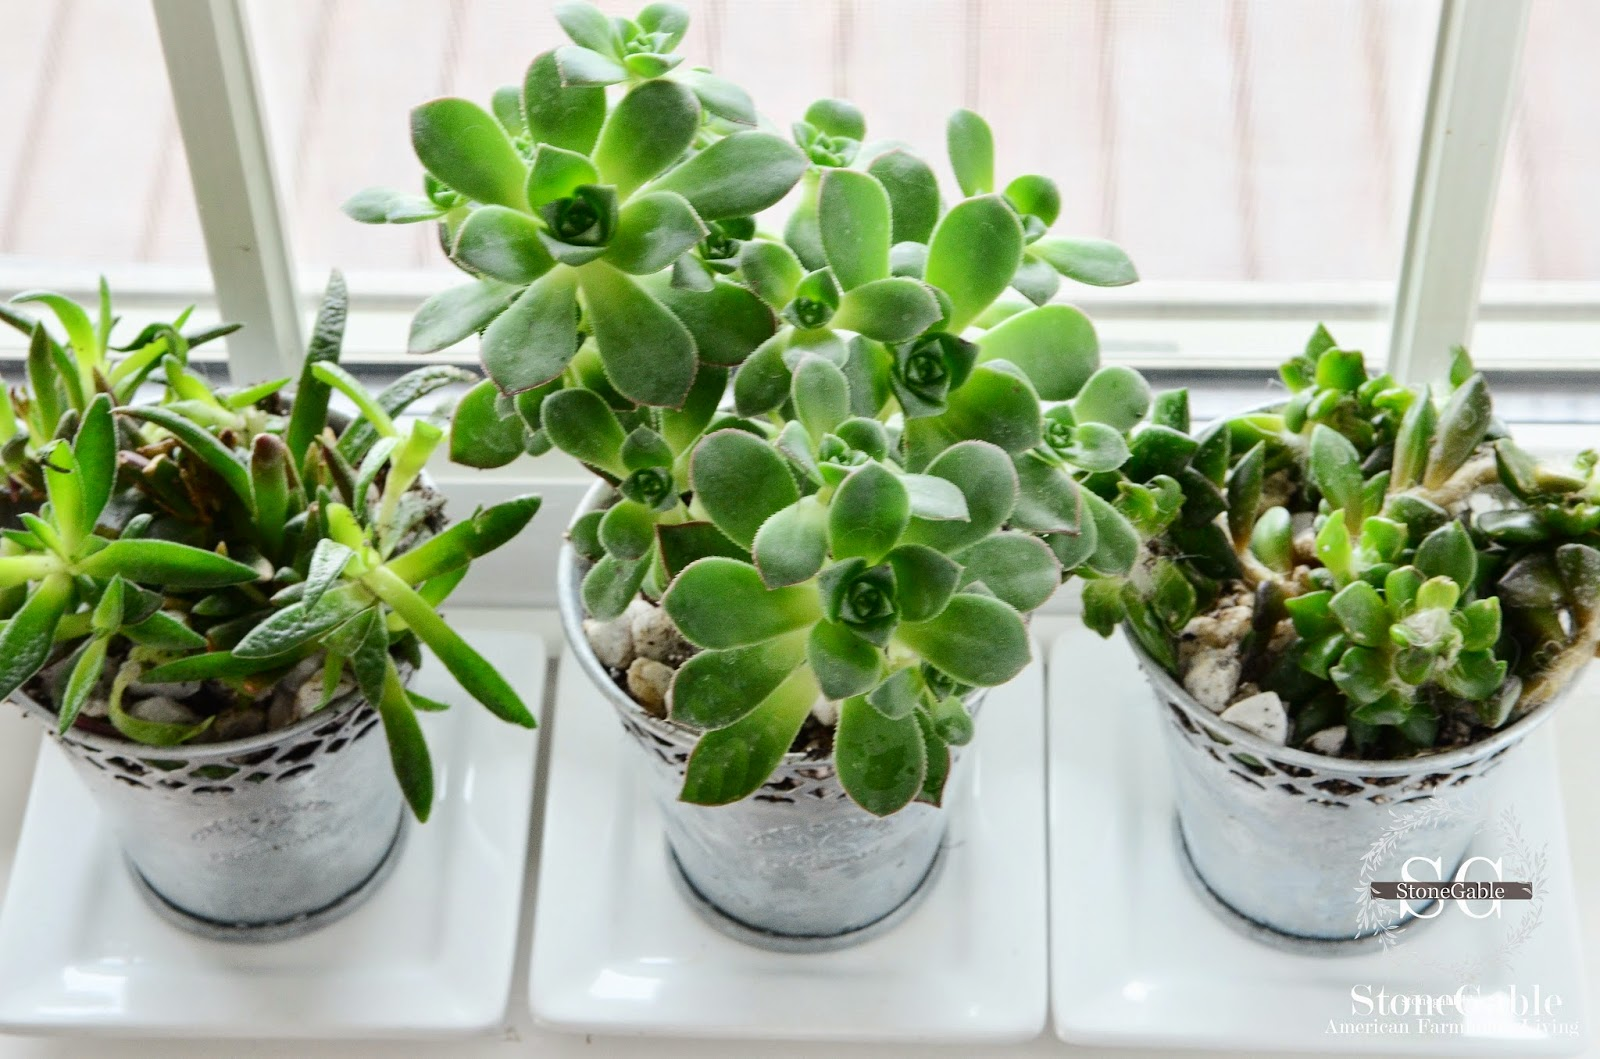 Stonegable Succulents Care Of A Trendy Plant